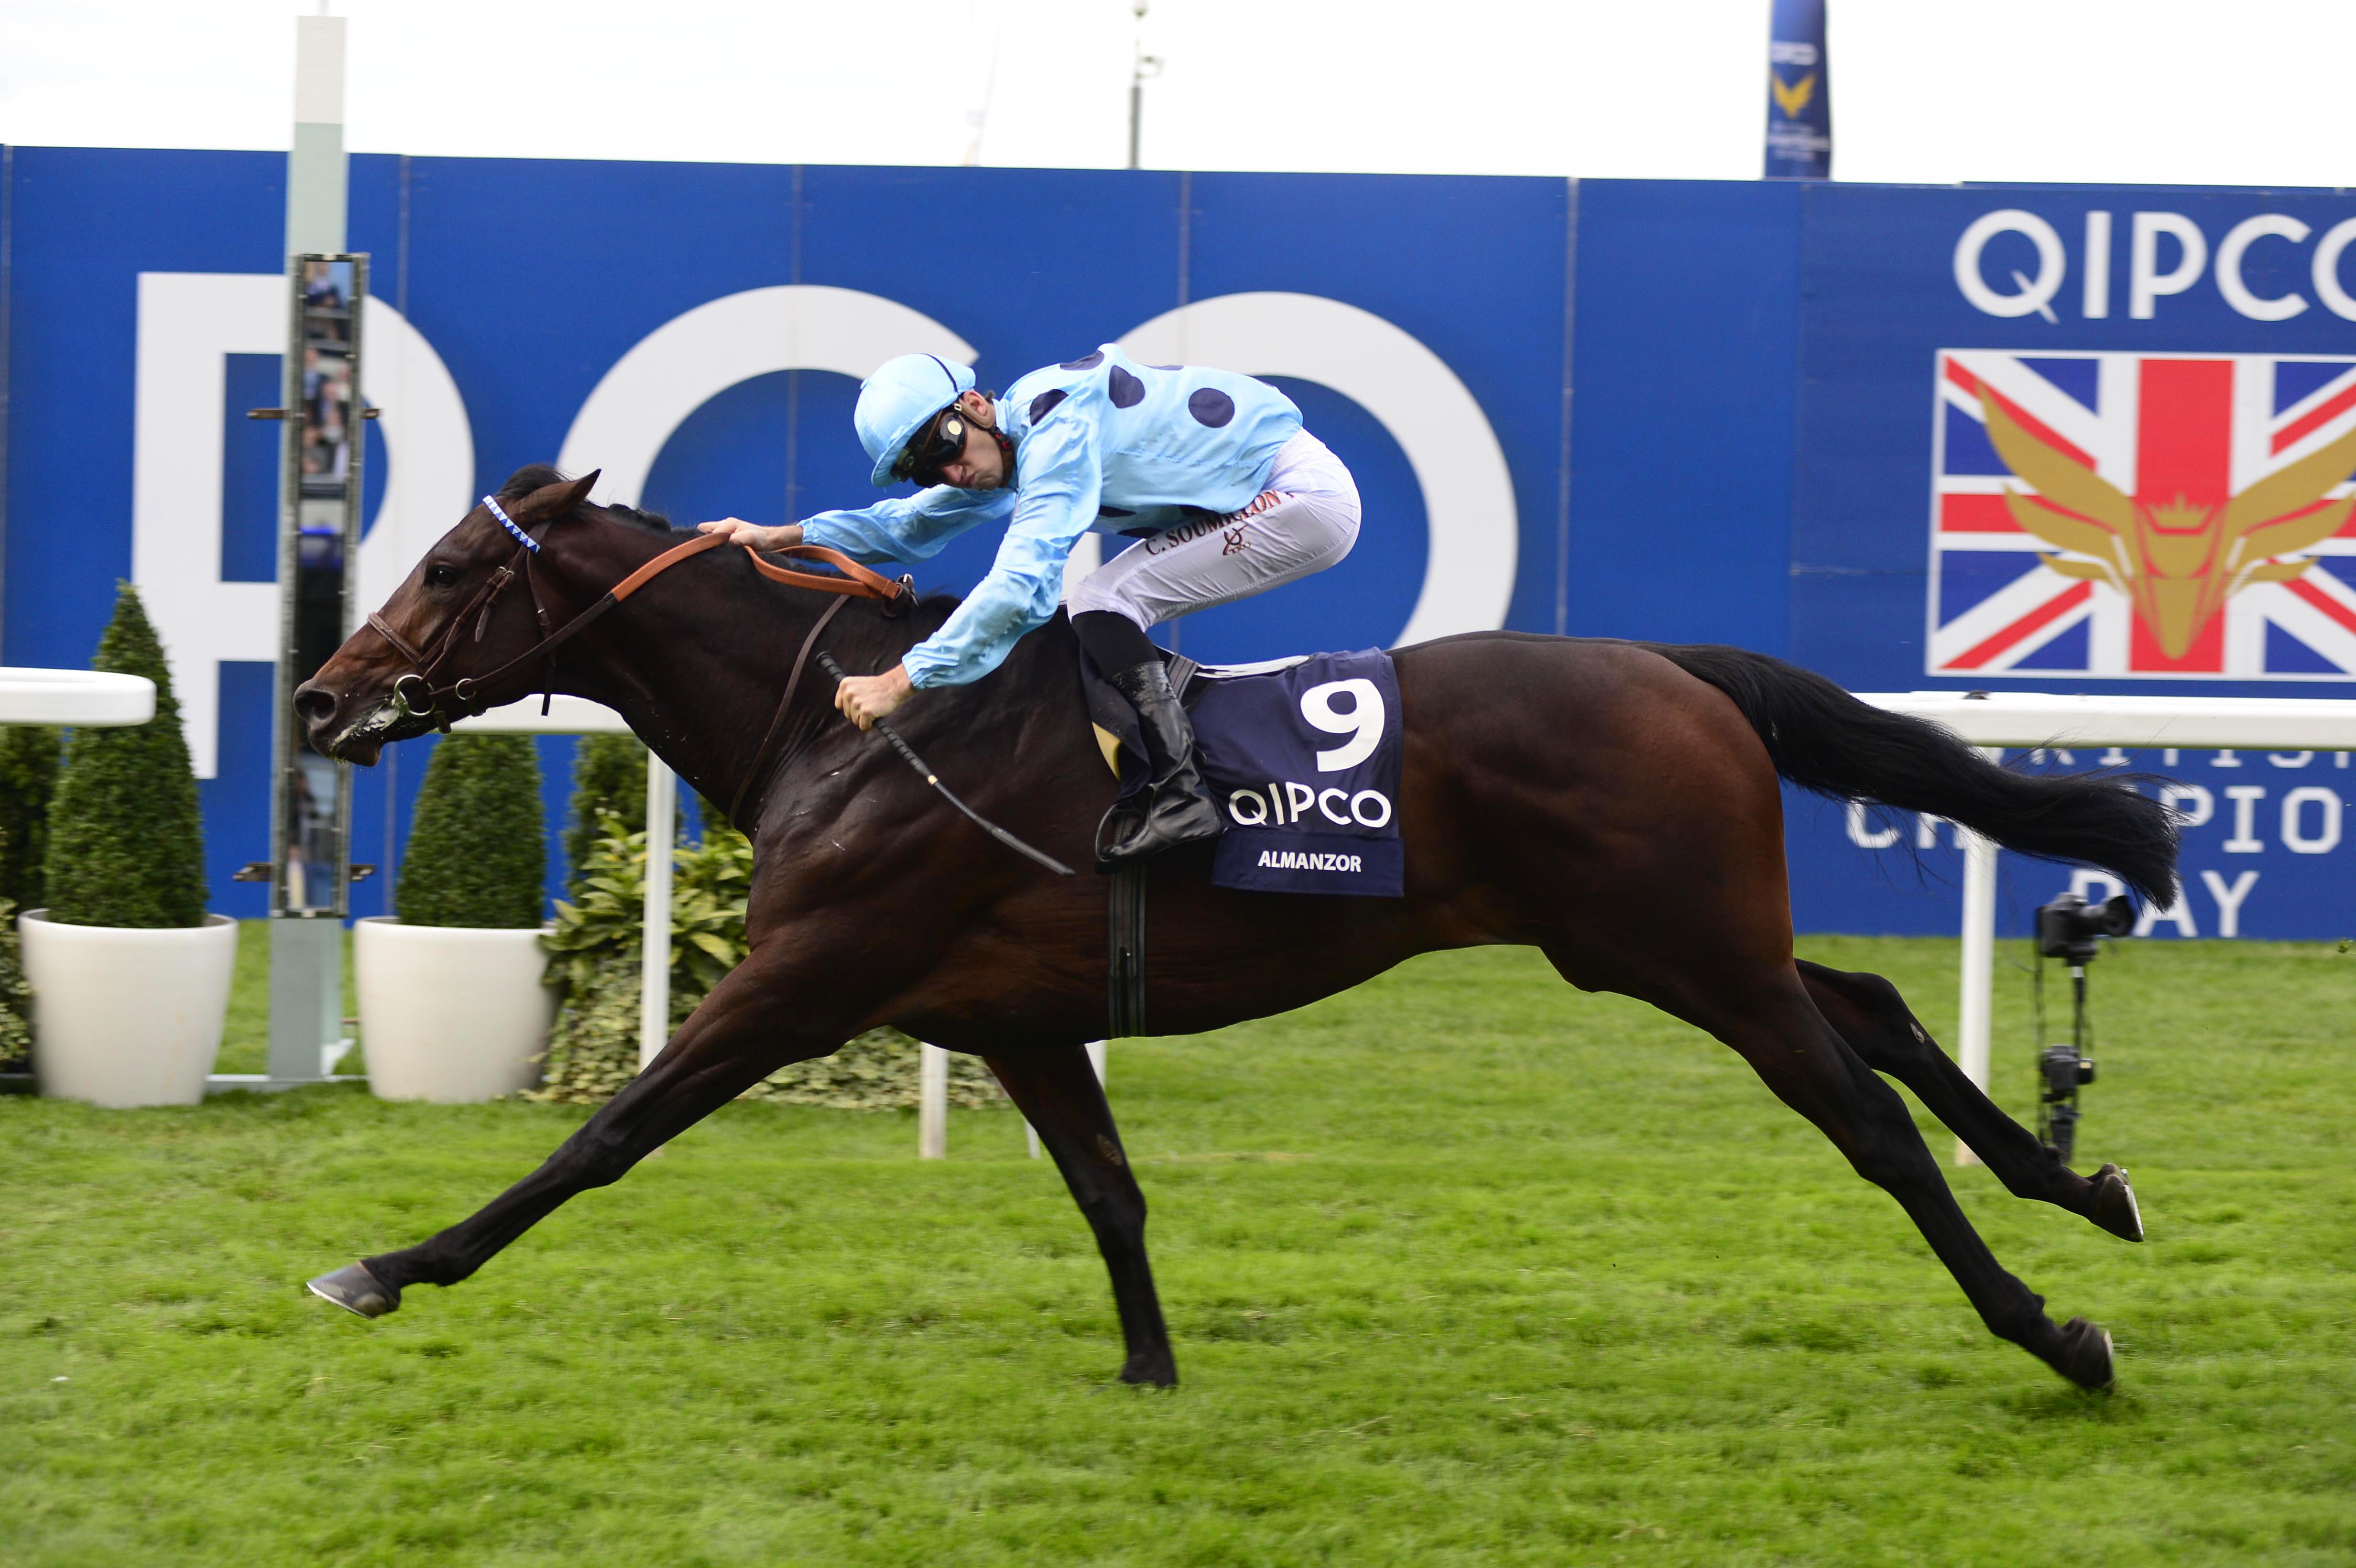 Almanzor and Christophe Soumillon win the QIPCO Champion Stakes